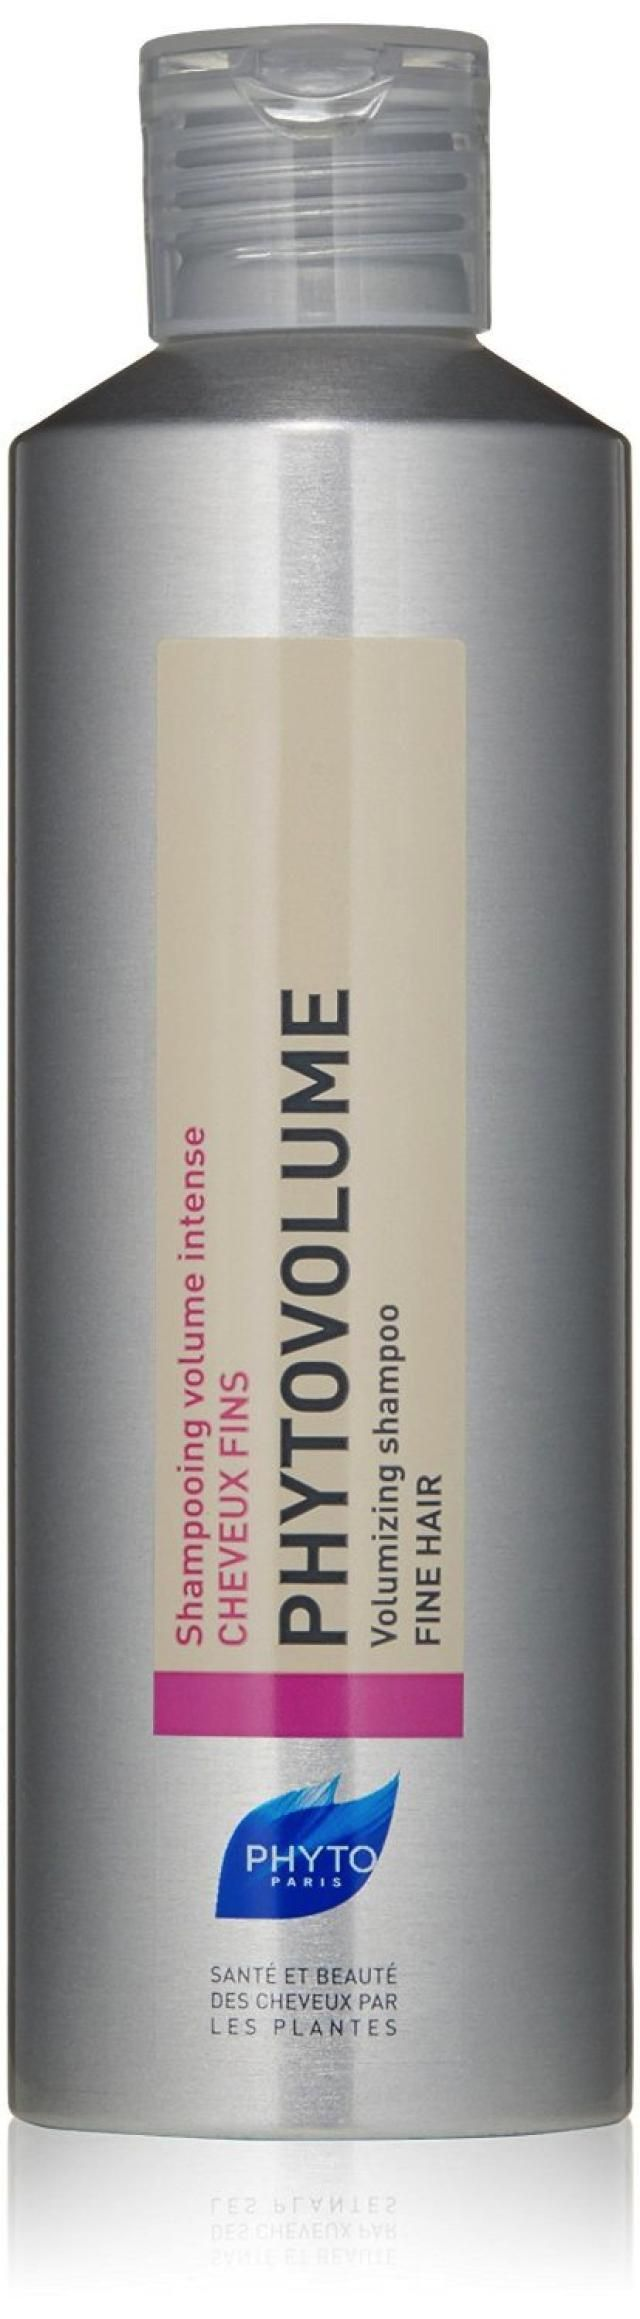 The 14 Best Shampoos, Conditioners for Fine Hair: Phyto Phytovolume Volumizing Shampoo, $22. Pair with volume conditioner